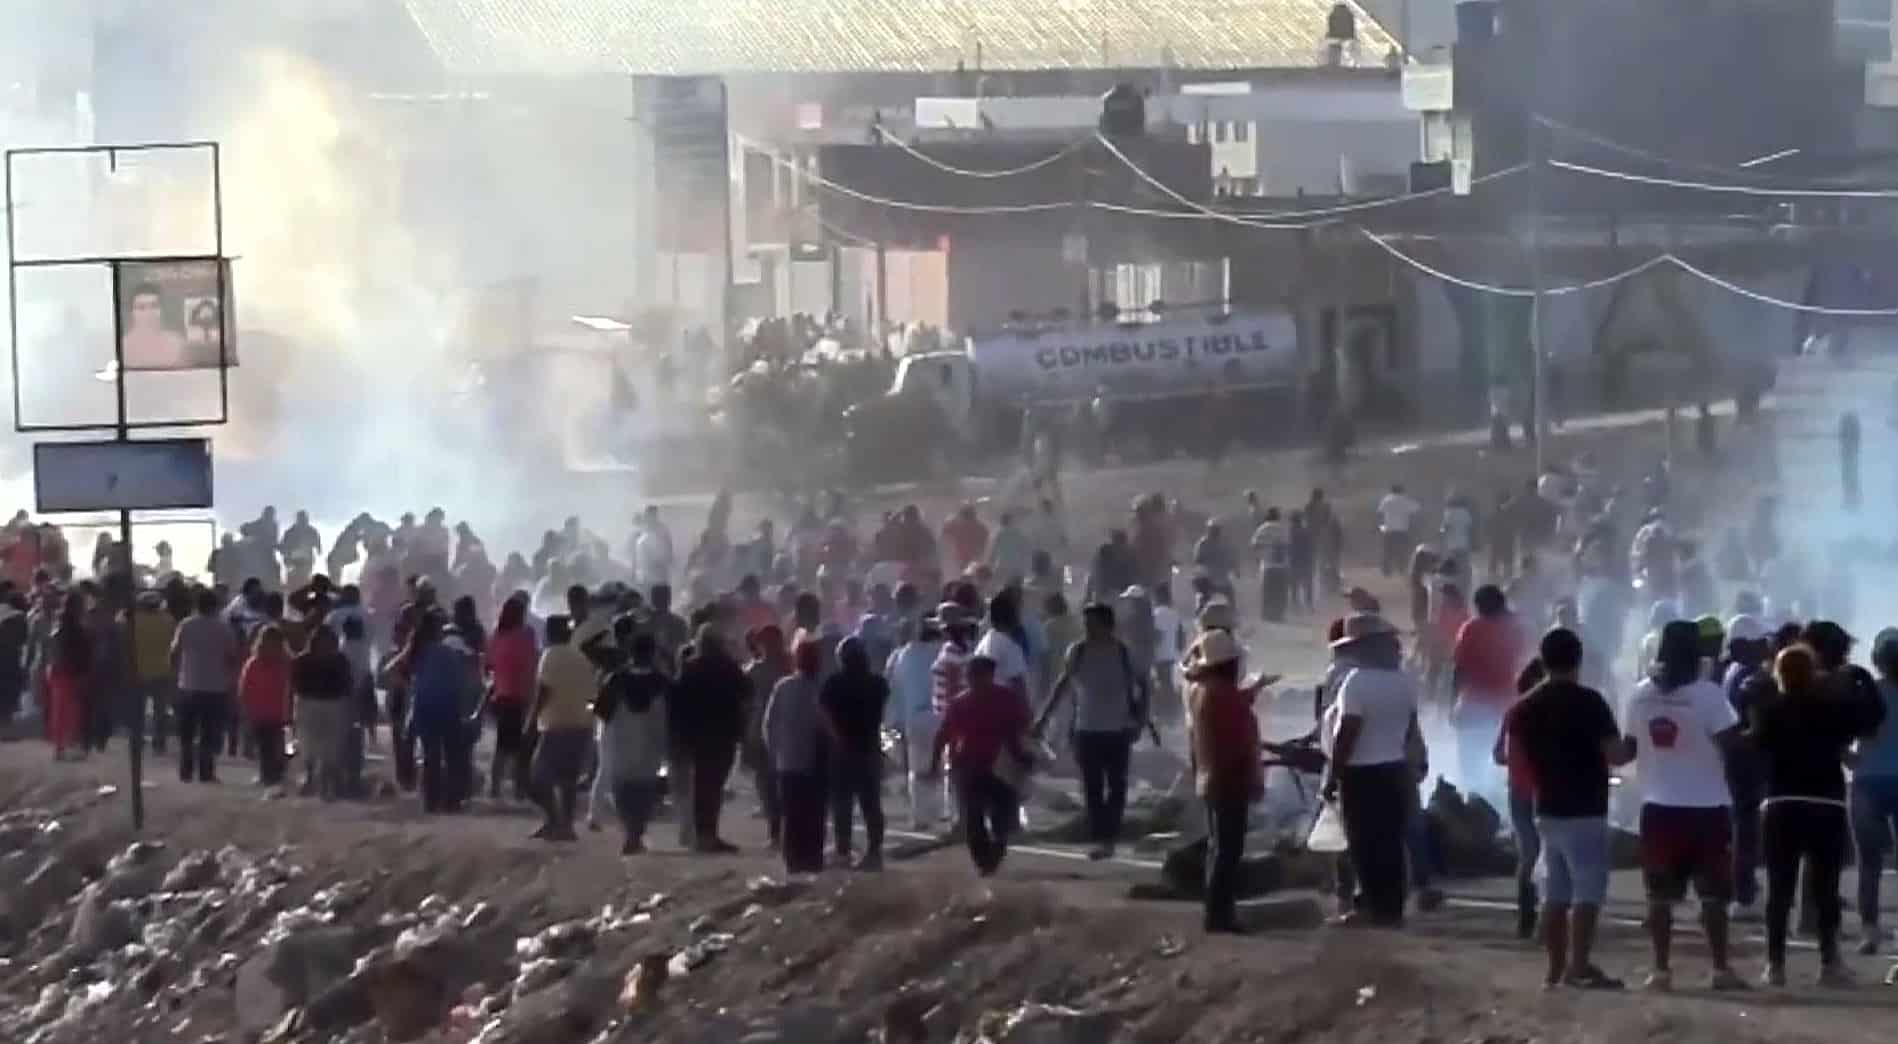 Violent clashes between police and demonstrators in the Peruvian city of Mollendo, about 1,000 km south of Lima, on May 6, 2015. Three people have been killed in clashes between police and demonstrators during seven weeks of protests against the $1.4 billion Tía María mine.